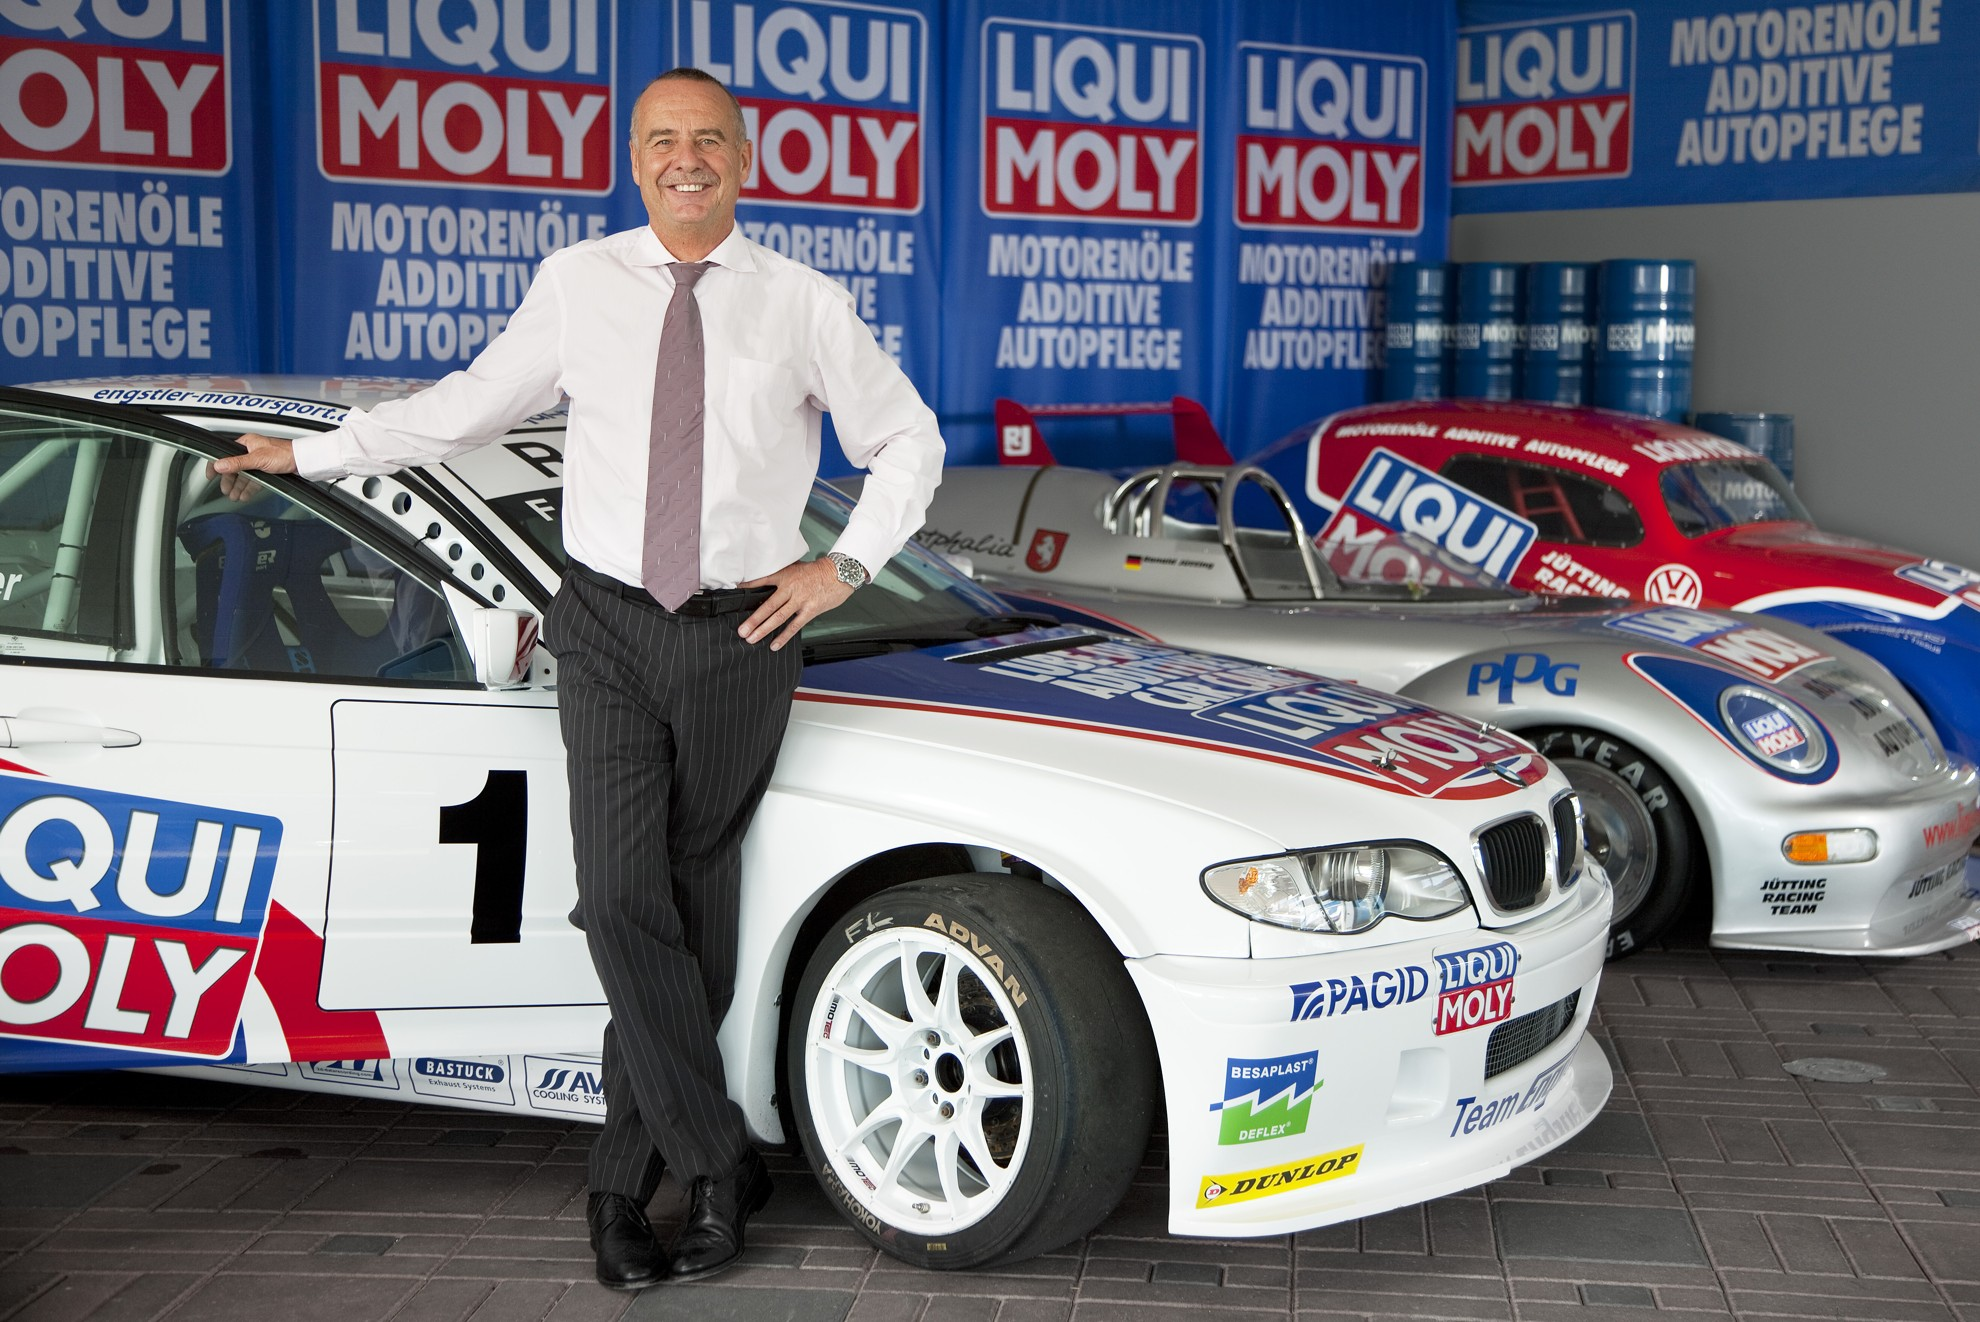 liqui moly most popular oil brand in germany. Black Bedroom Furniture Sets. Home Design Ideas